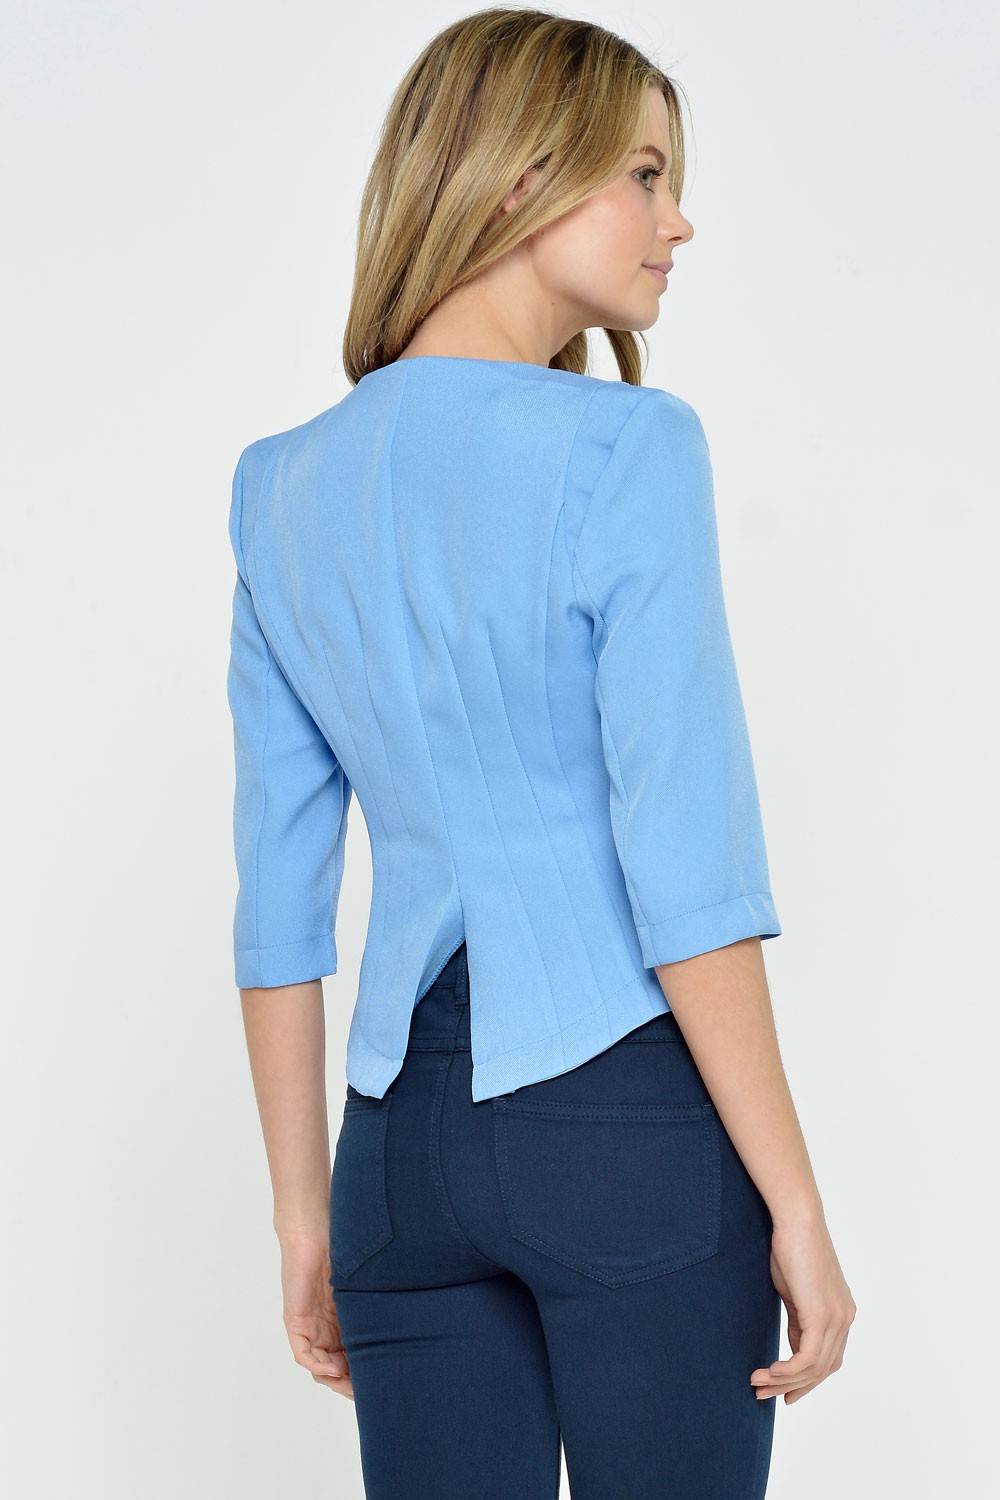 Being the leader of the pack means dressing the part, so do it right with the Team Leader Navy Blue Cropped Blazer! A collarless front lies between lightly padded shoulders.